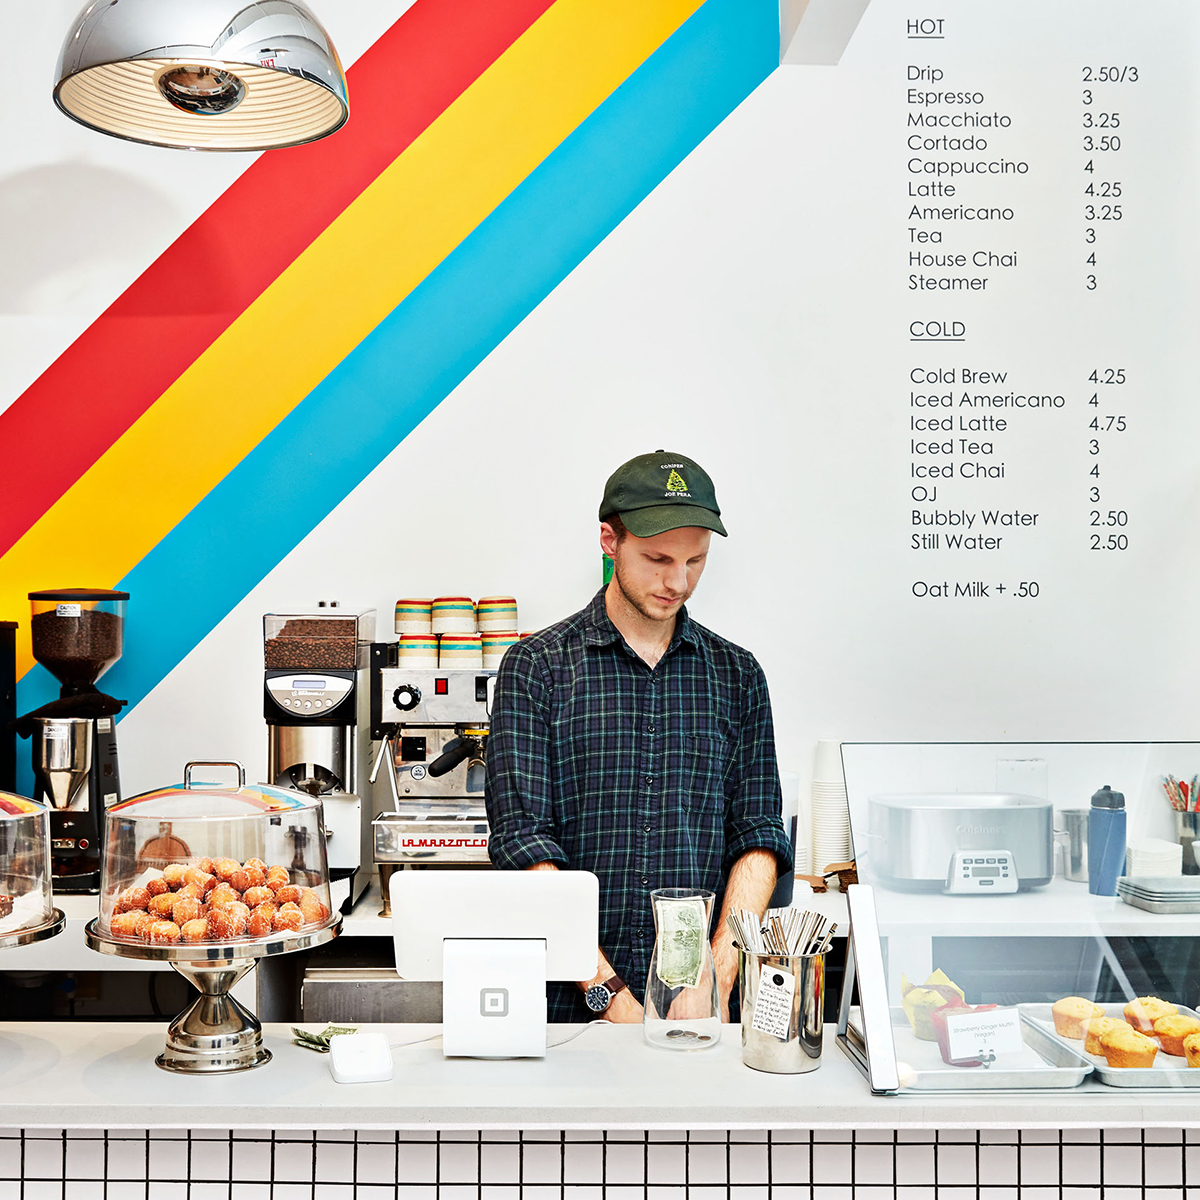 man in cafe serving coffee and pastries